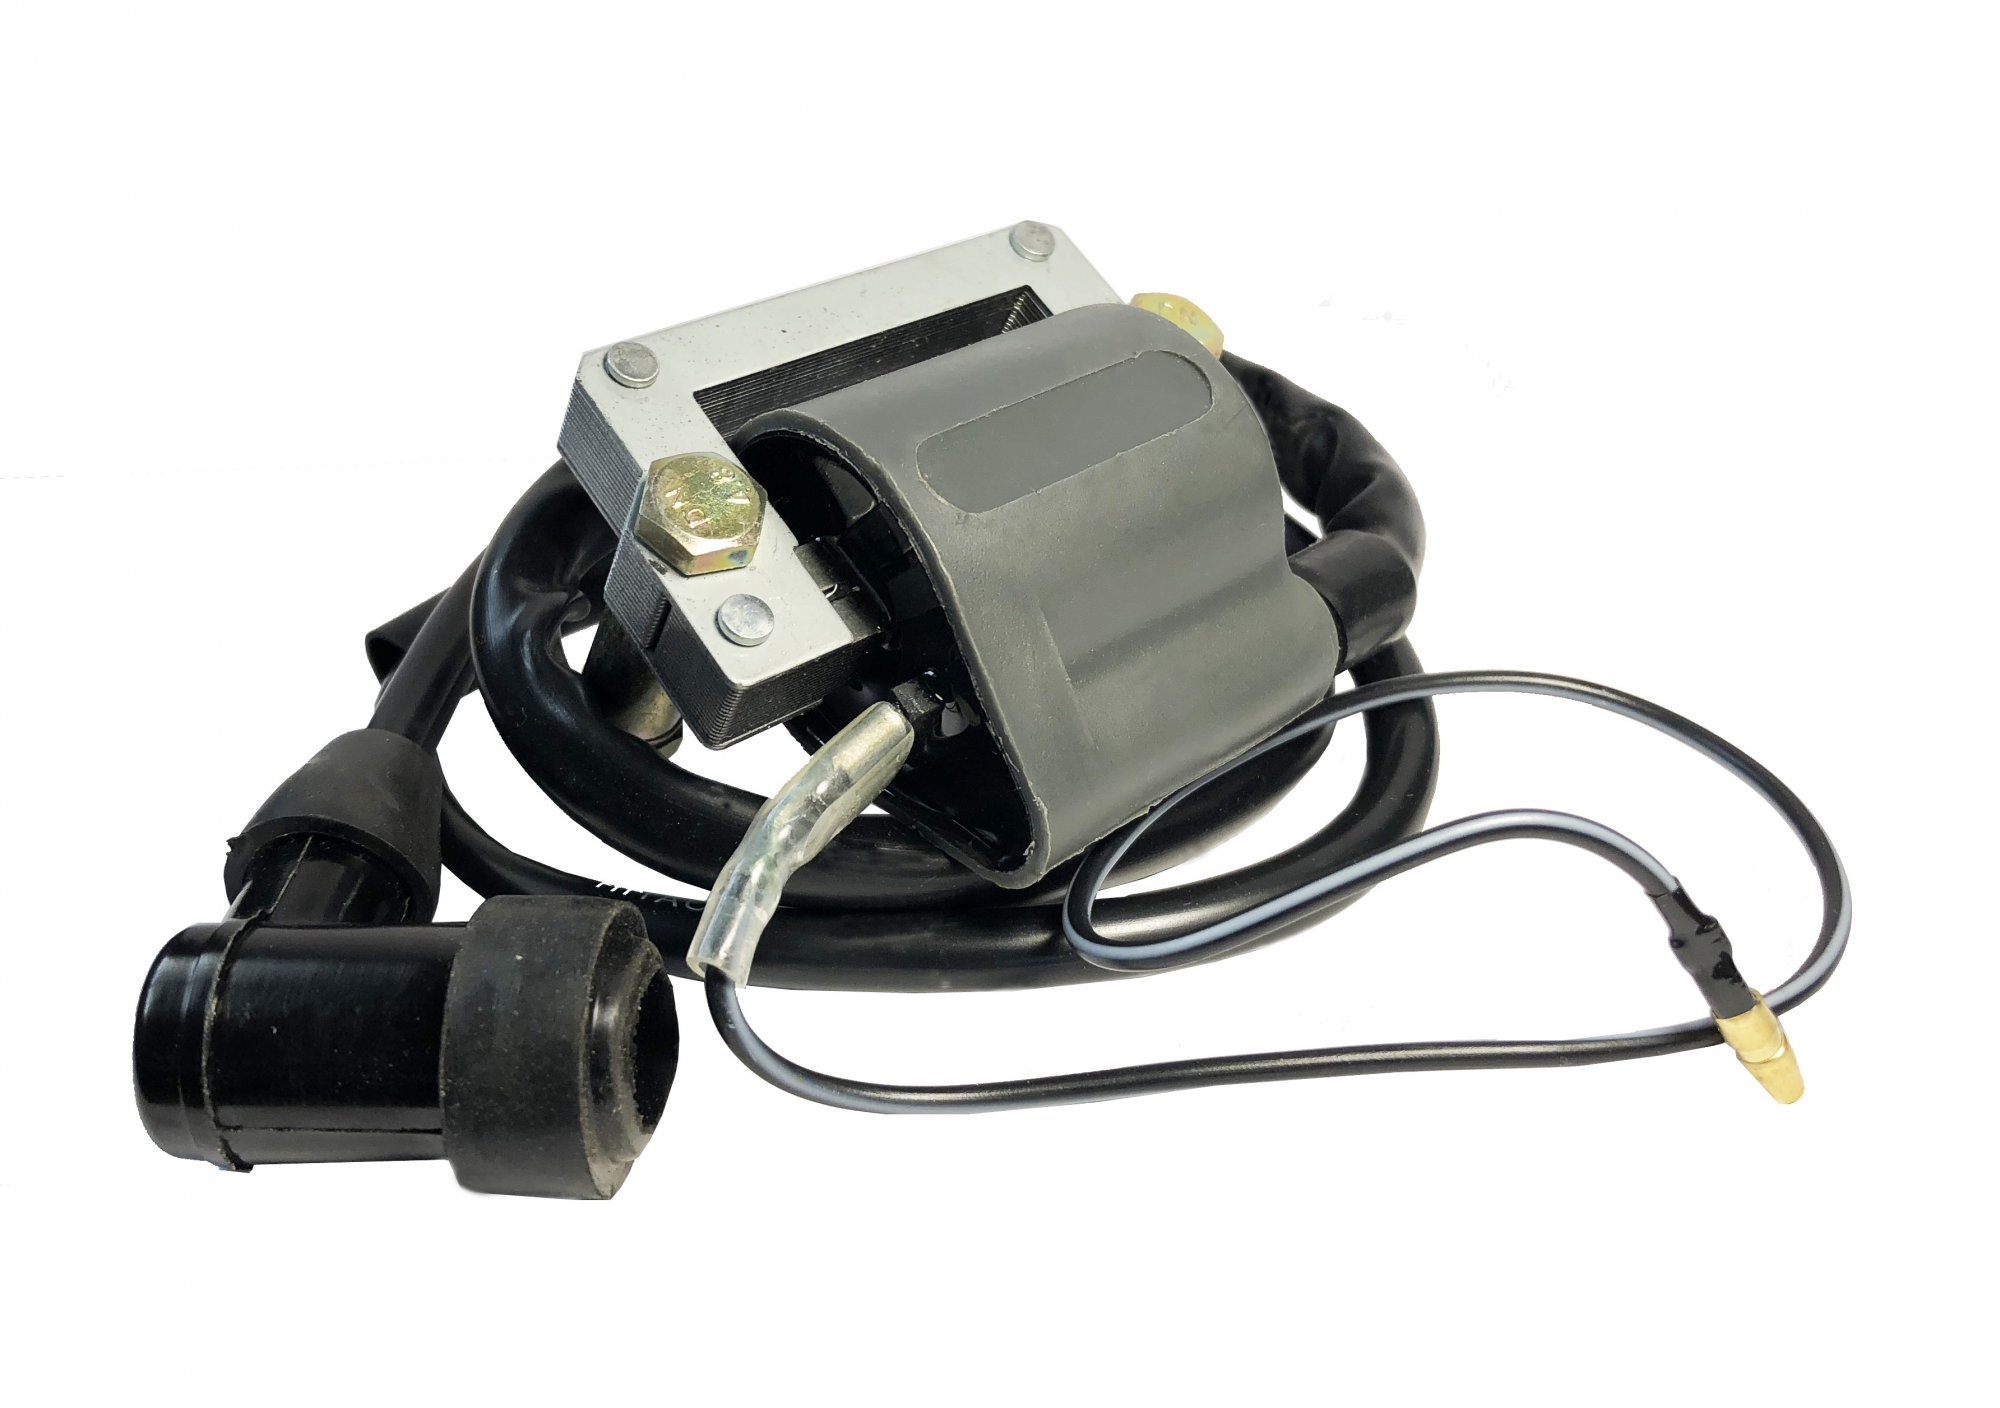 Yamaha 1976-1981 TT500 & 1976-1979 XT500 High Output (6V or 12V) Ignition Coil Assembly Replica with Cap 26-024